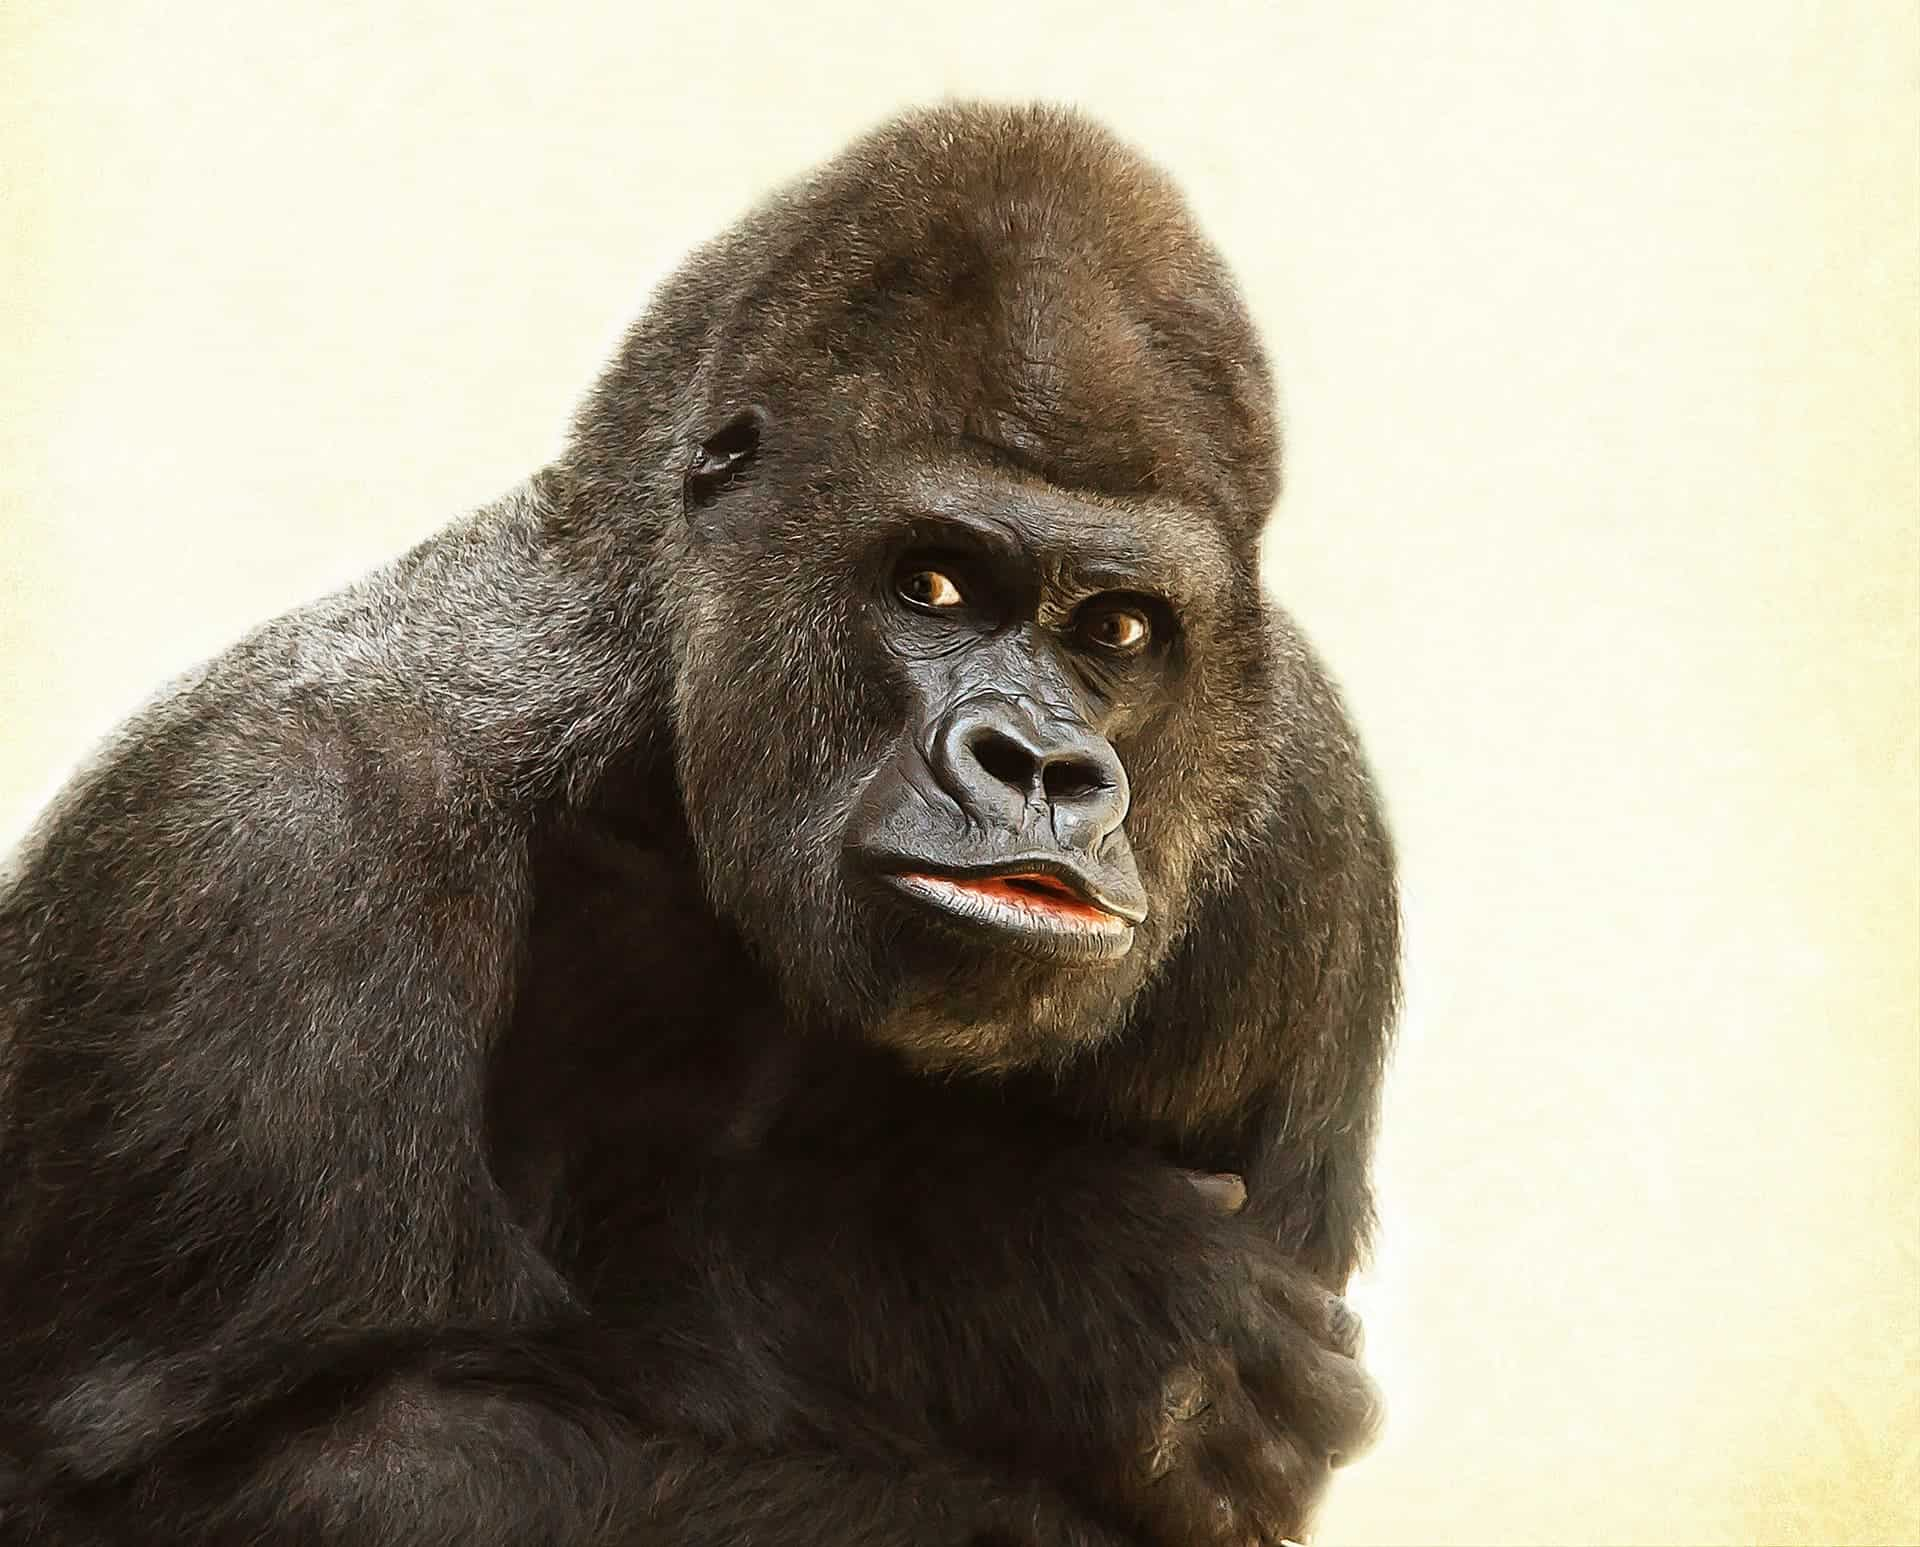 Gorillas and humans treat their territory the same way, study finds